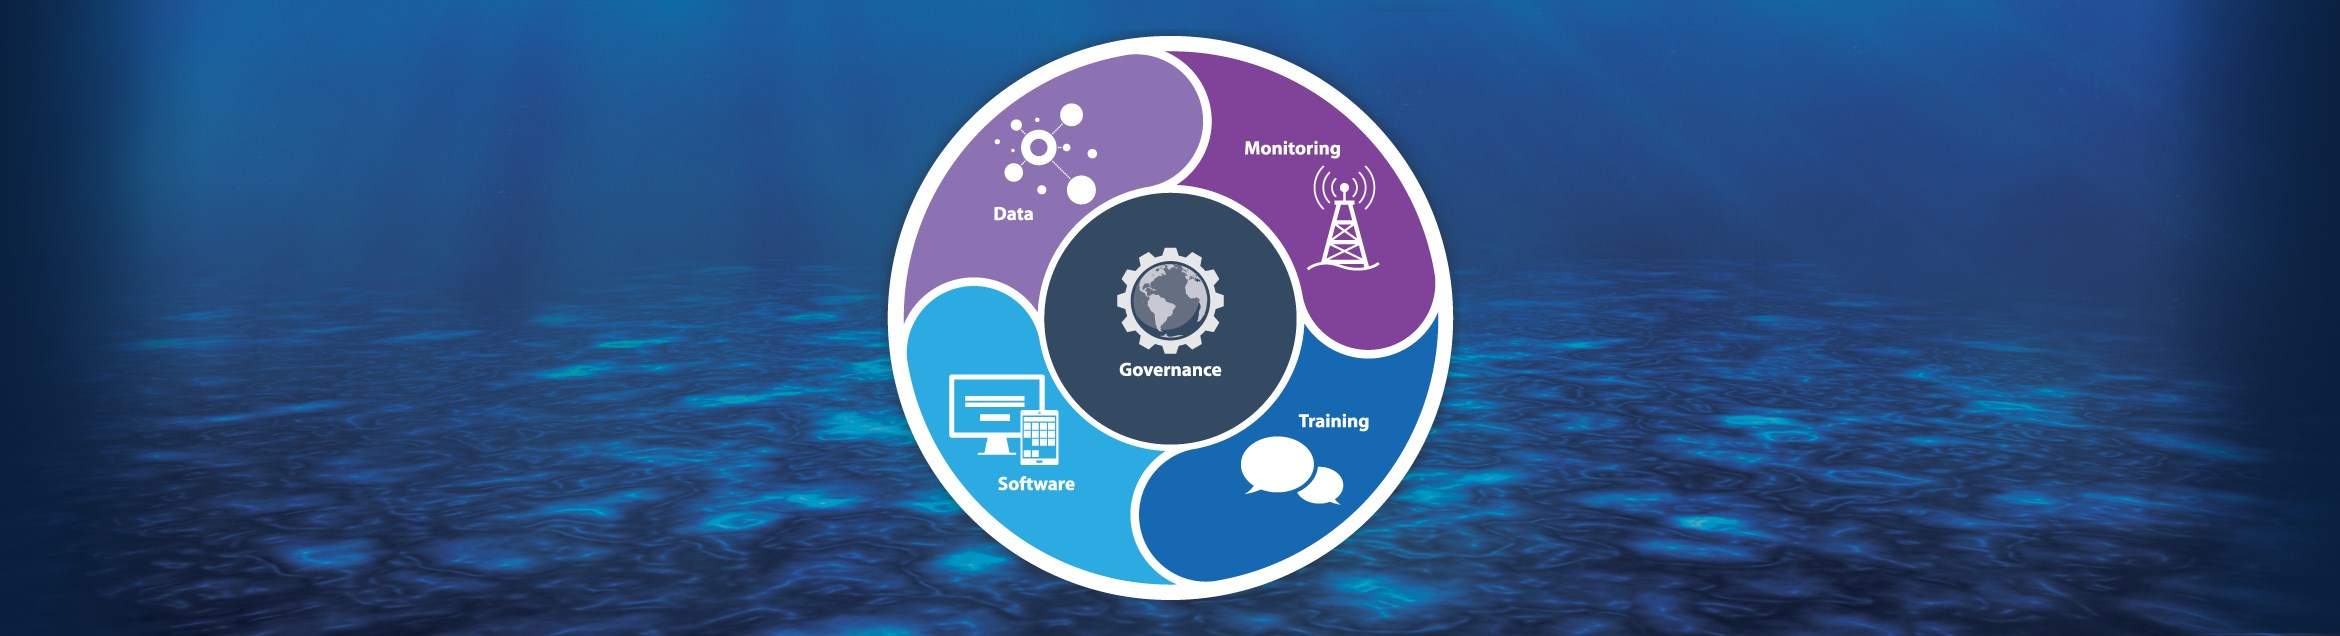 When you need to acquire, manage, use and share marine environmental data